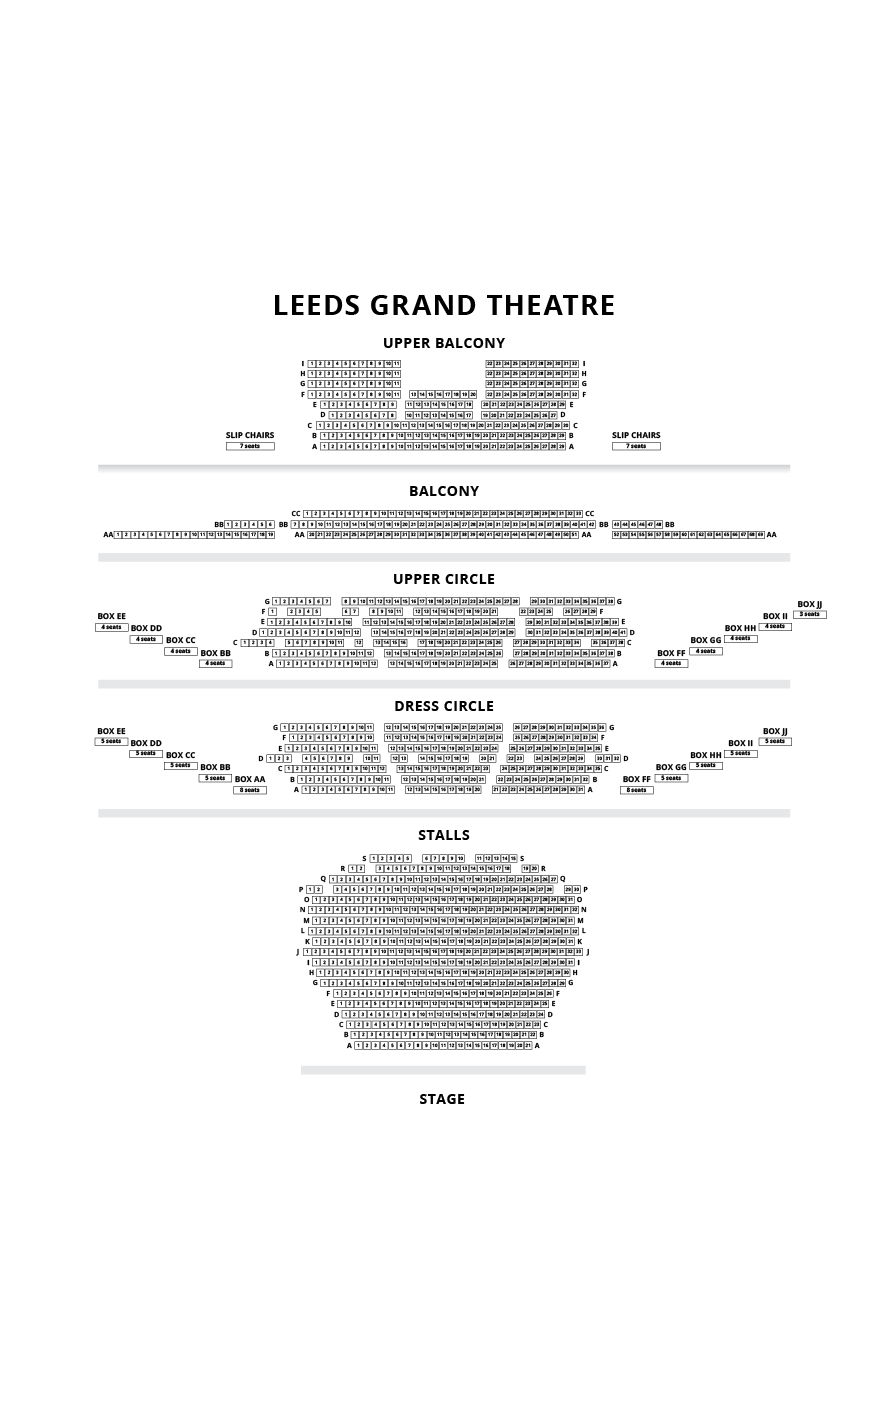 Leeds Grand Theatre Seating Plan